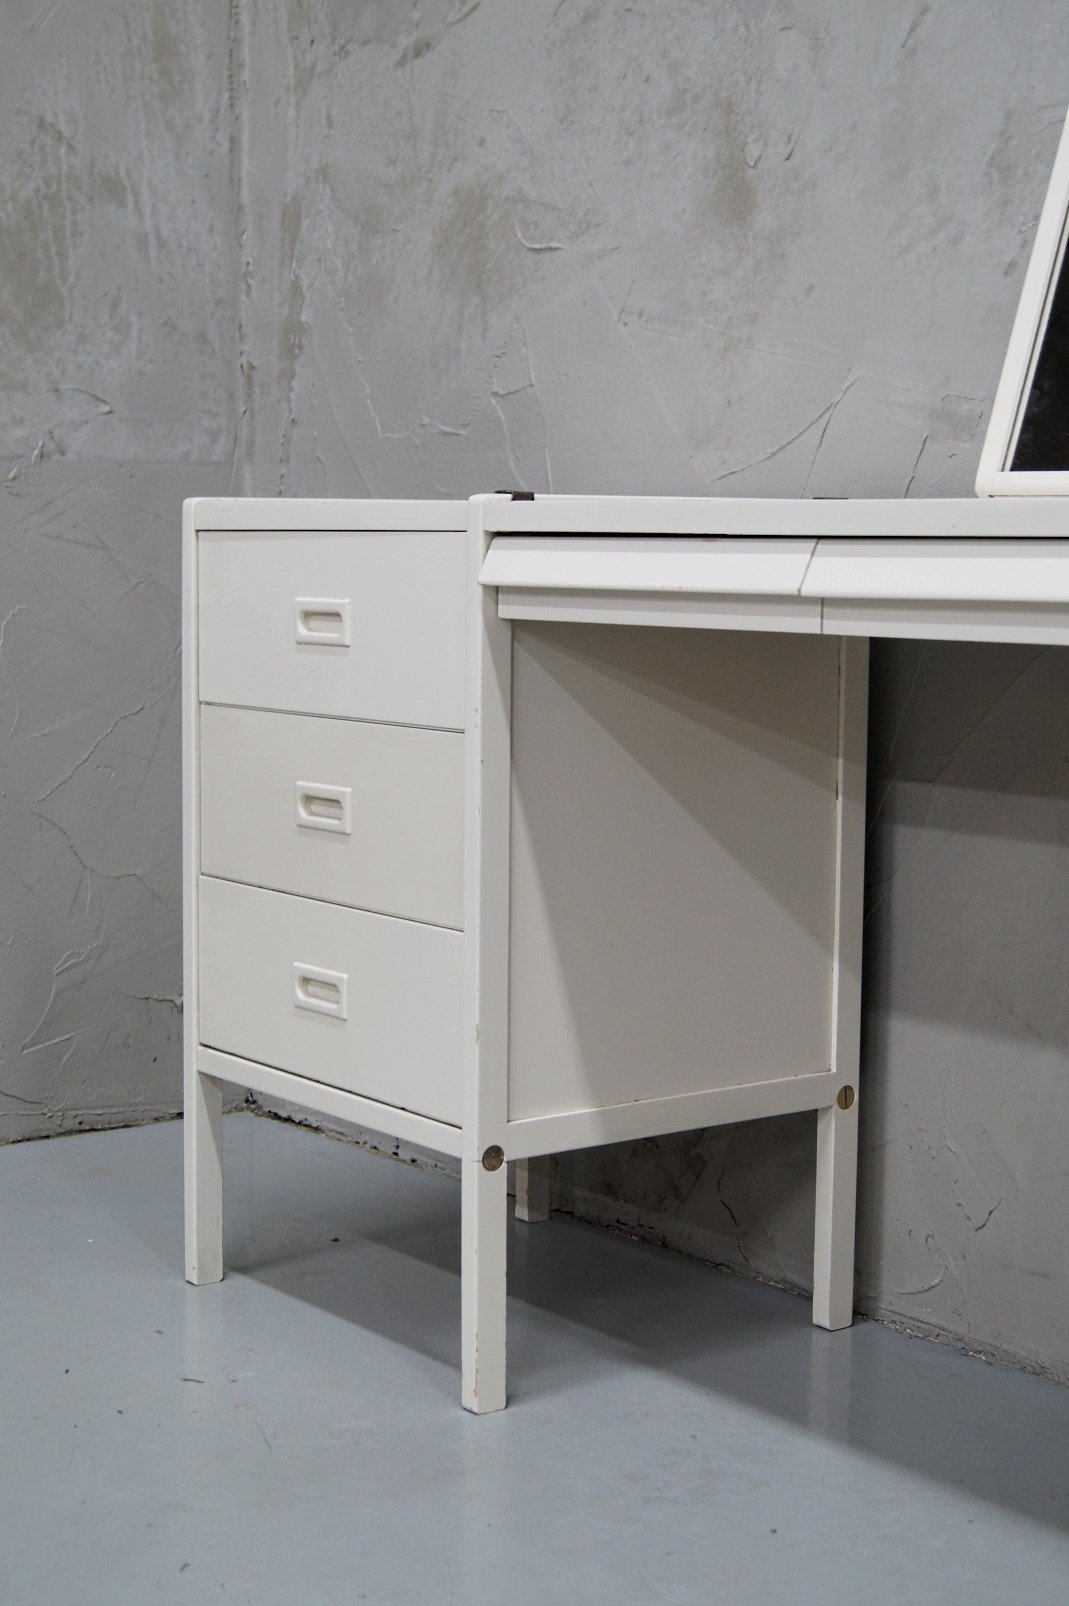 Set of Chest of Drawers and Dressing Table, 1960s - 474432 - photo